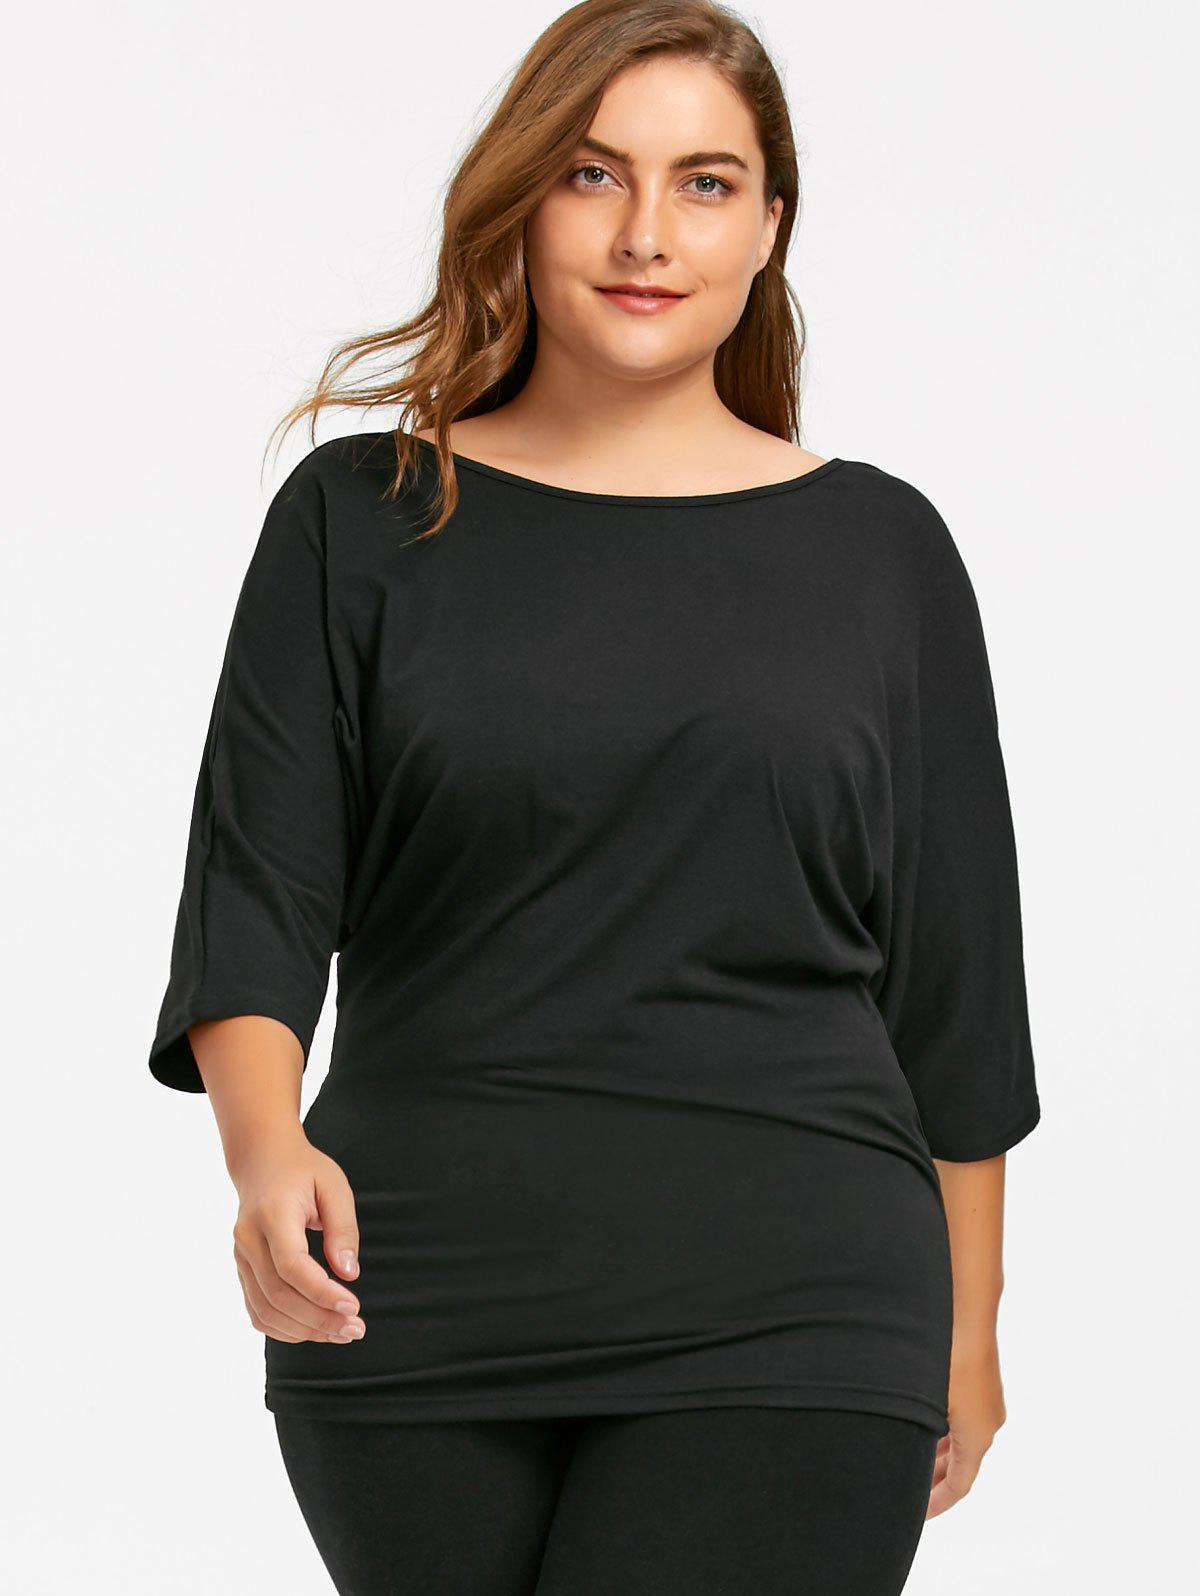 Plus Size Back Lace Crochet Batwing T-shirt - BLACK XL